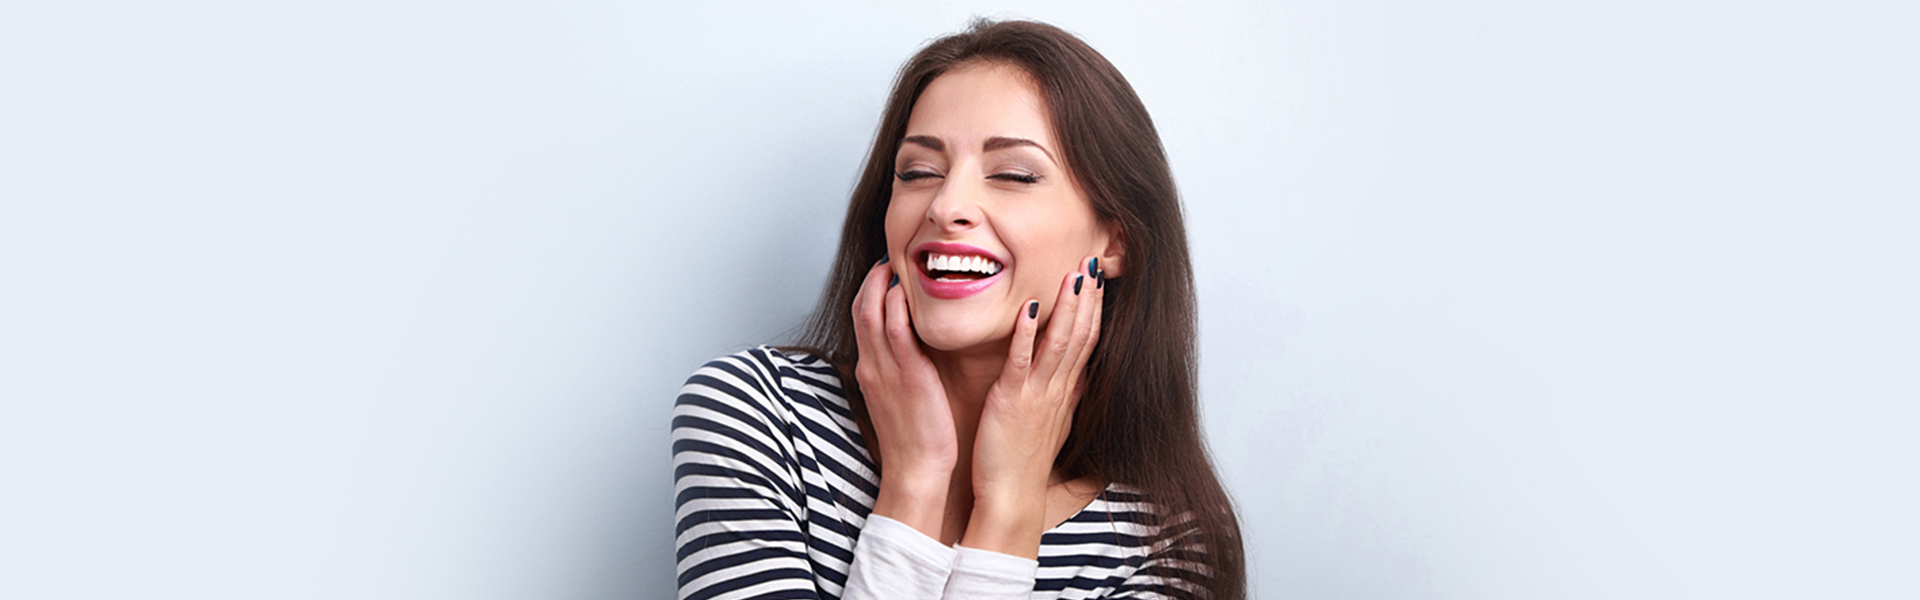 All you need to know before going for dental crowns